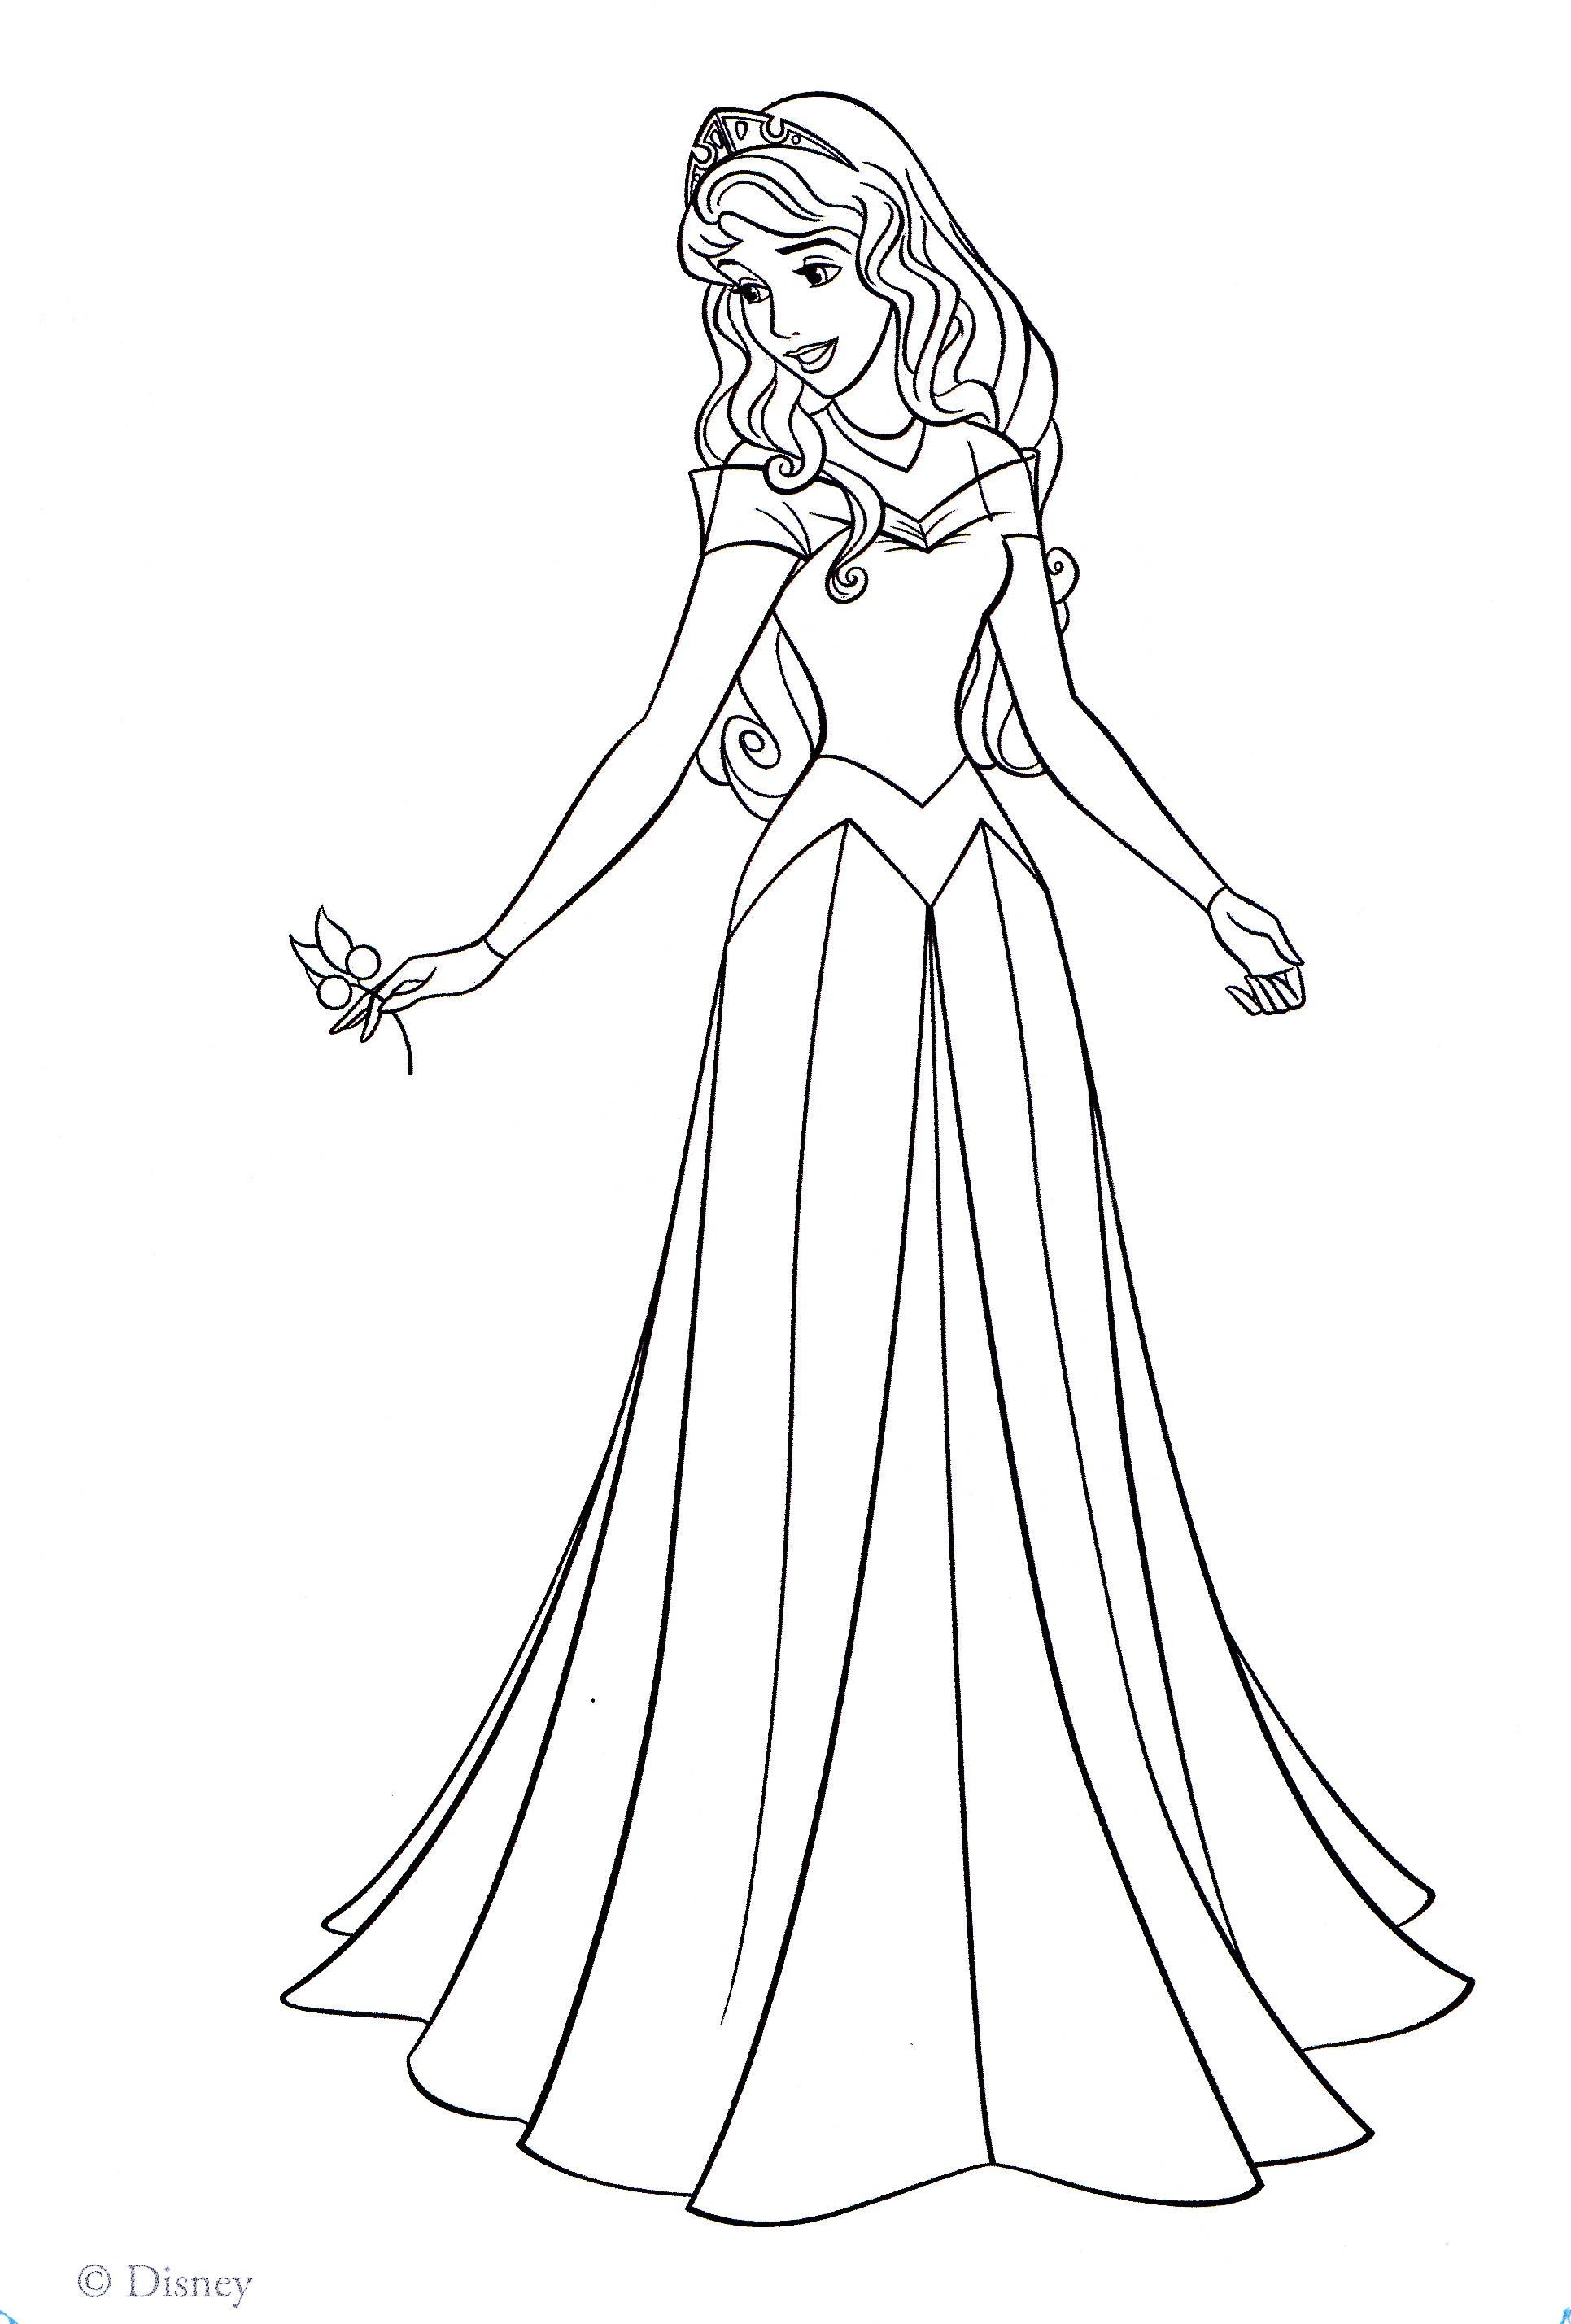 This is a photo of Striking Princess Aurora Coloring Pages